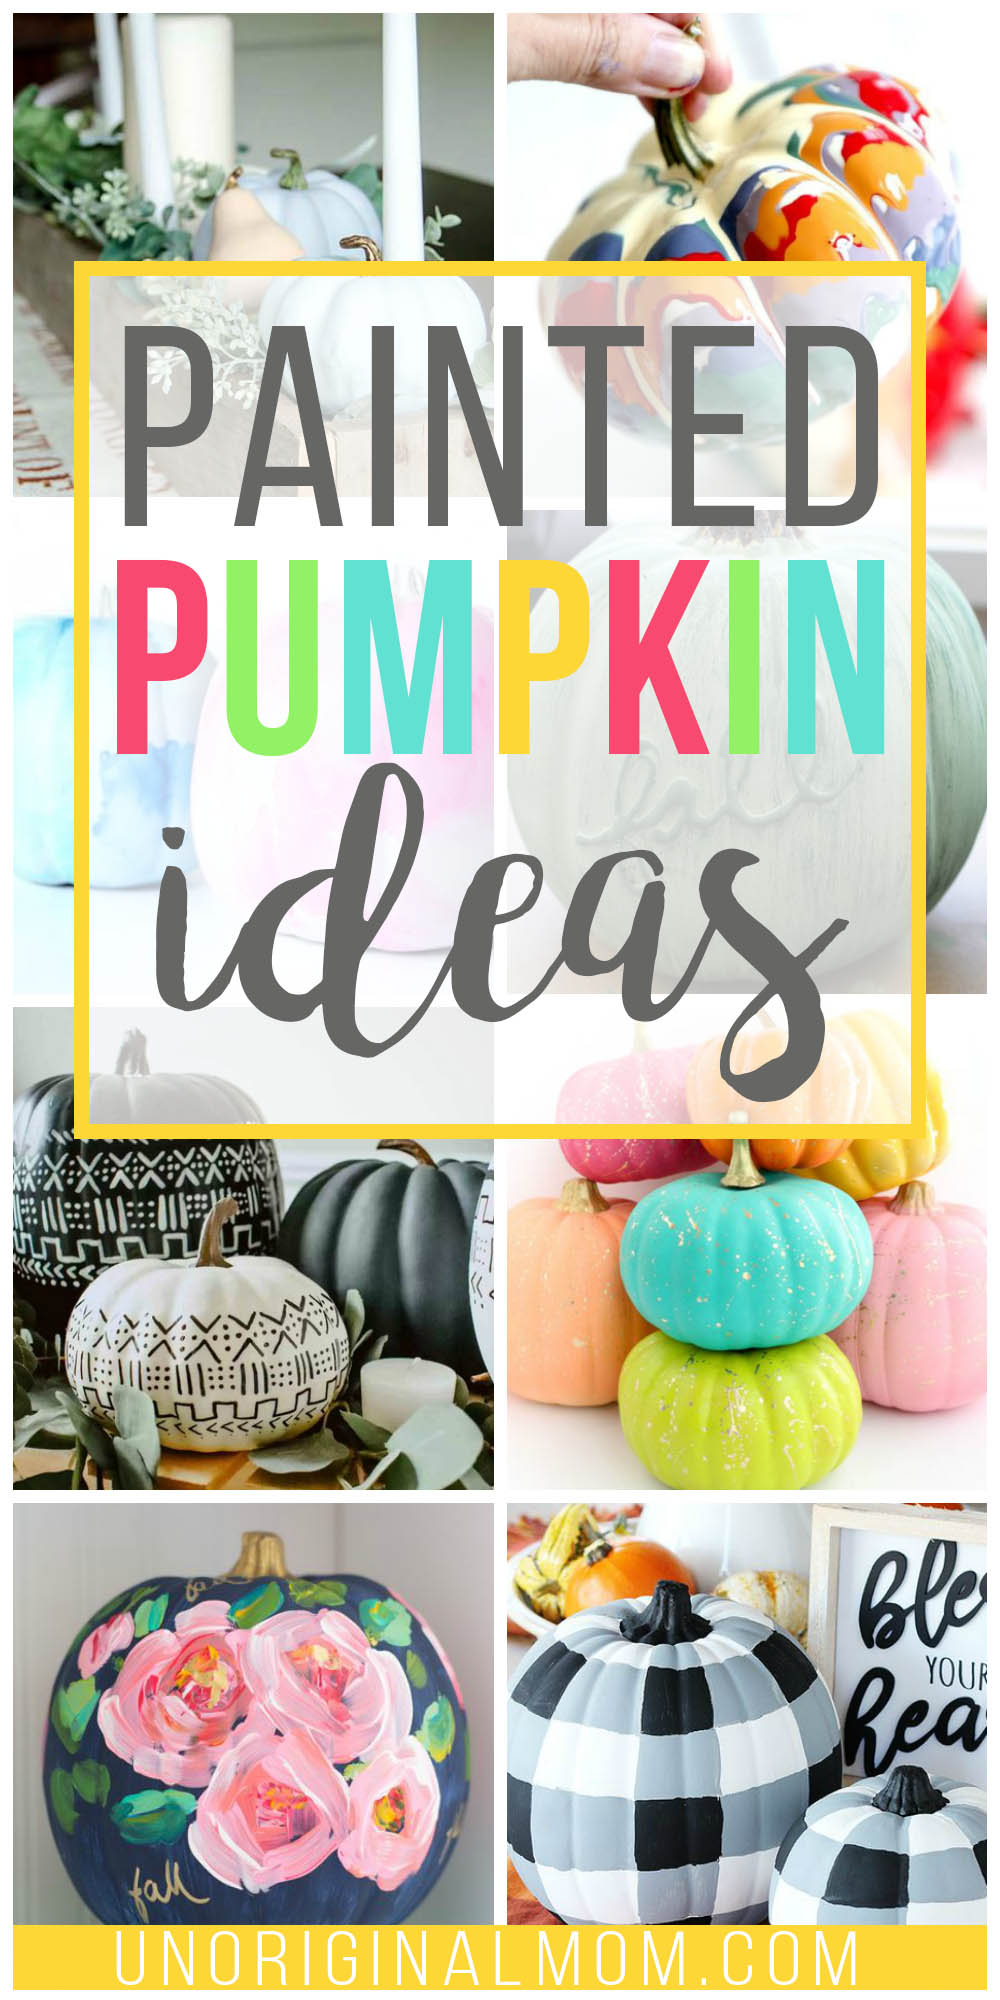 DIY painted pumpkin ideas to use in your fall decor - from buffalo check pumpkins to watercolor pumpkins and so many more great ideas!